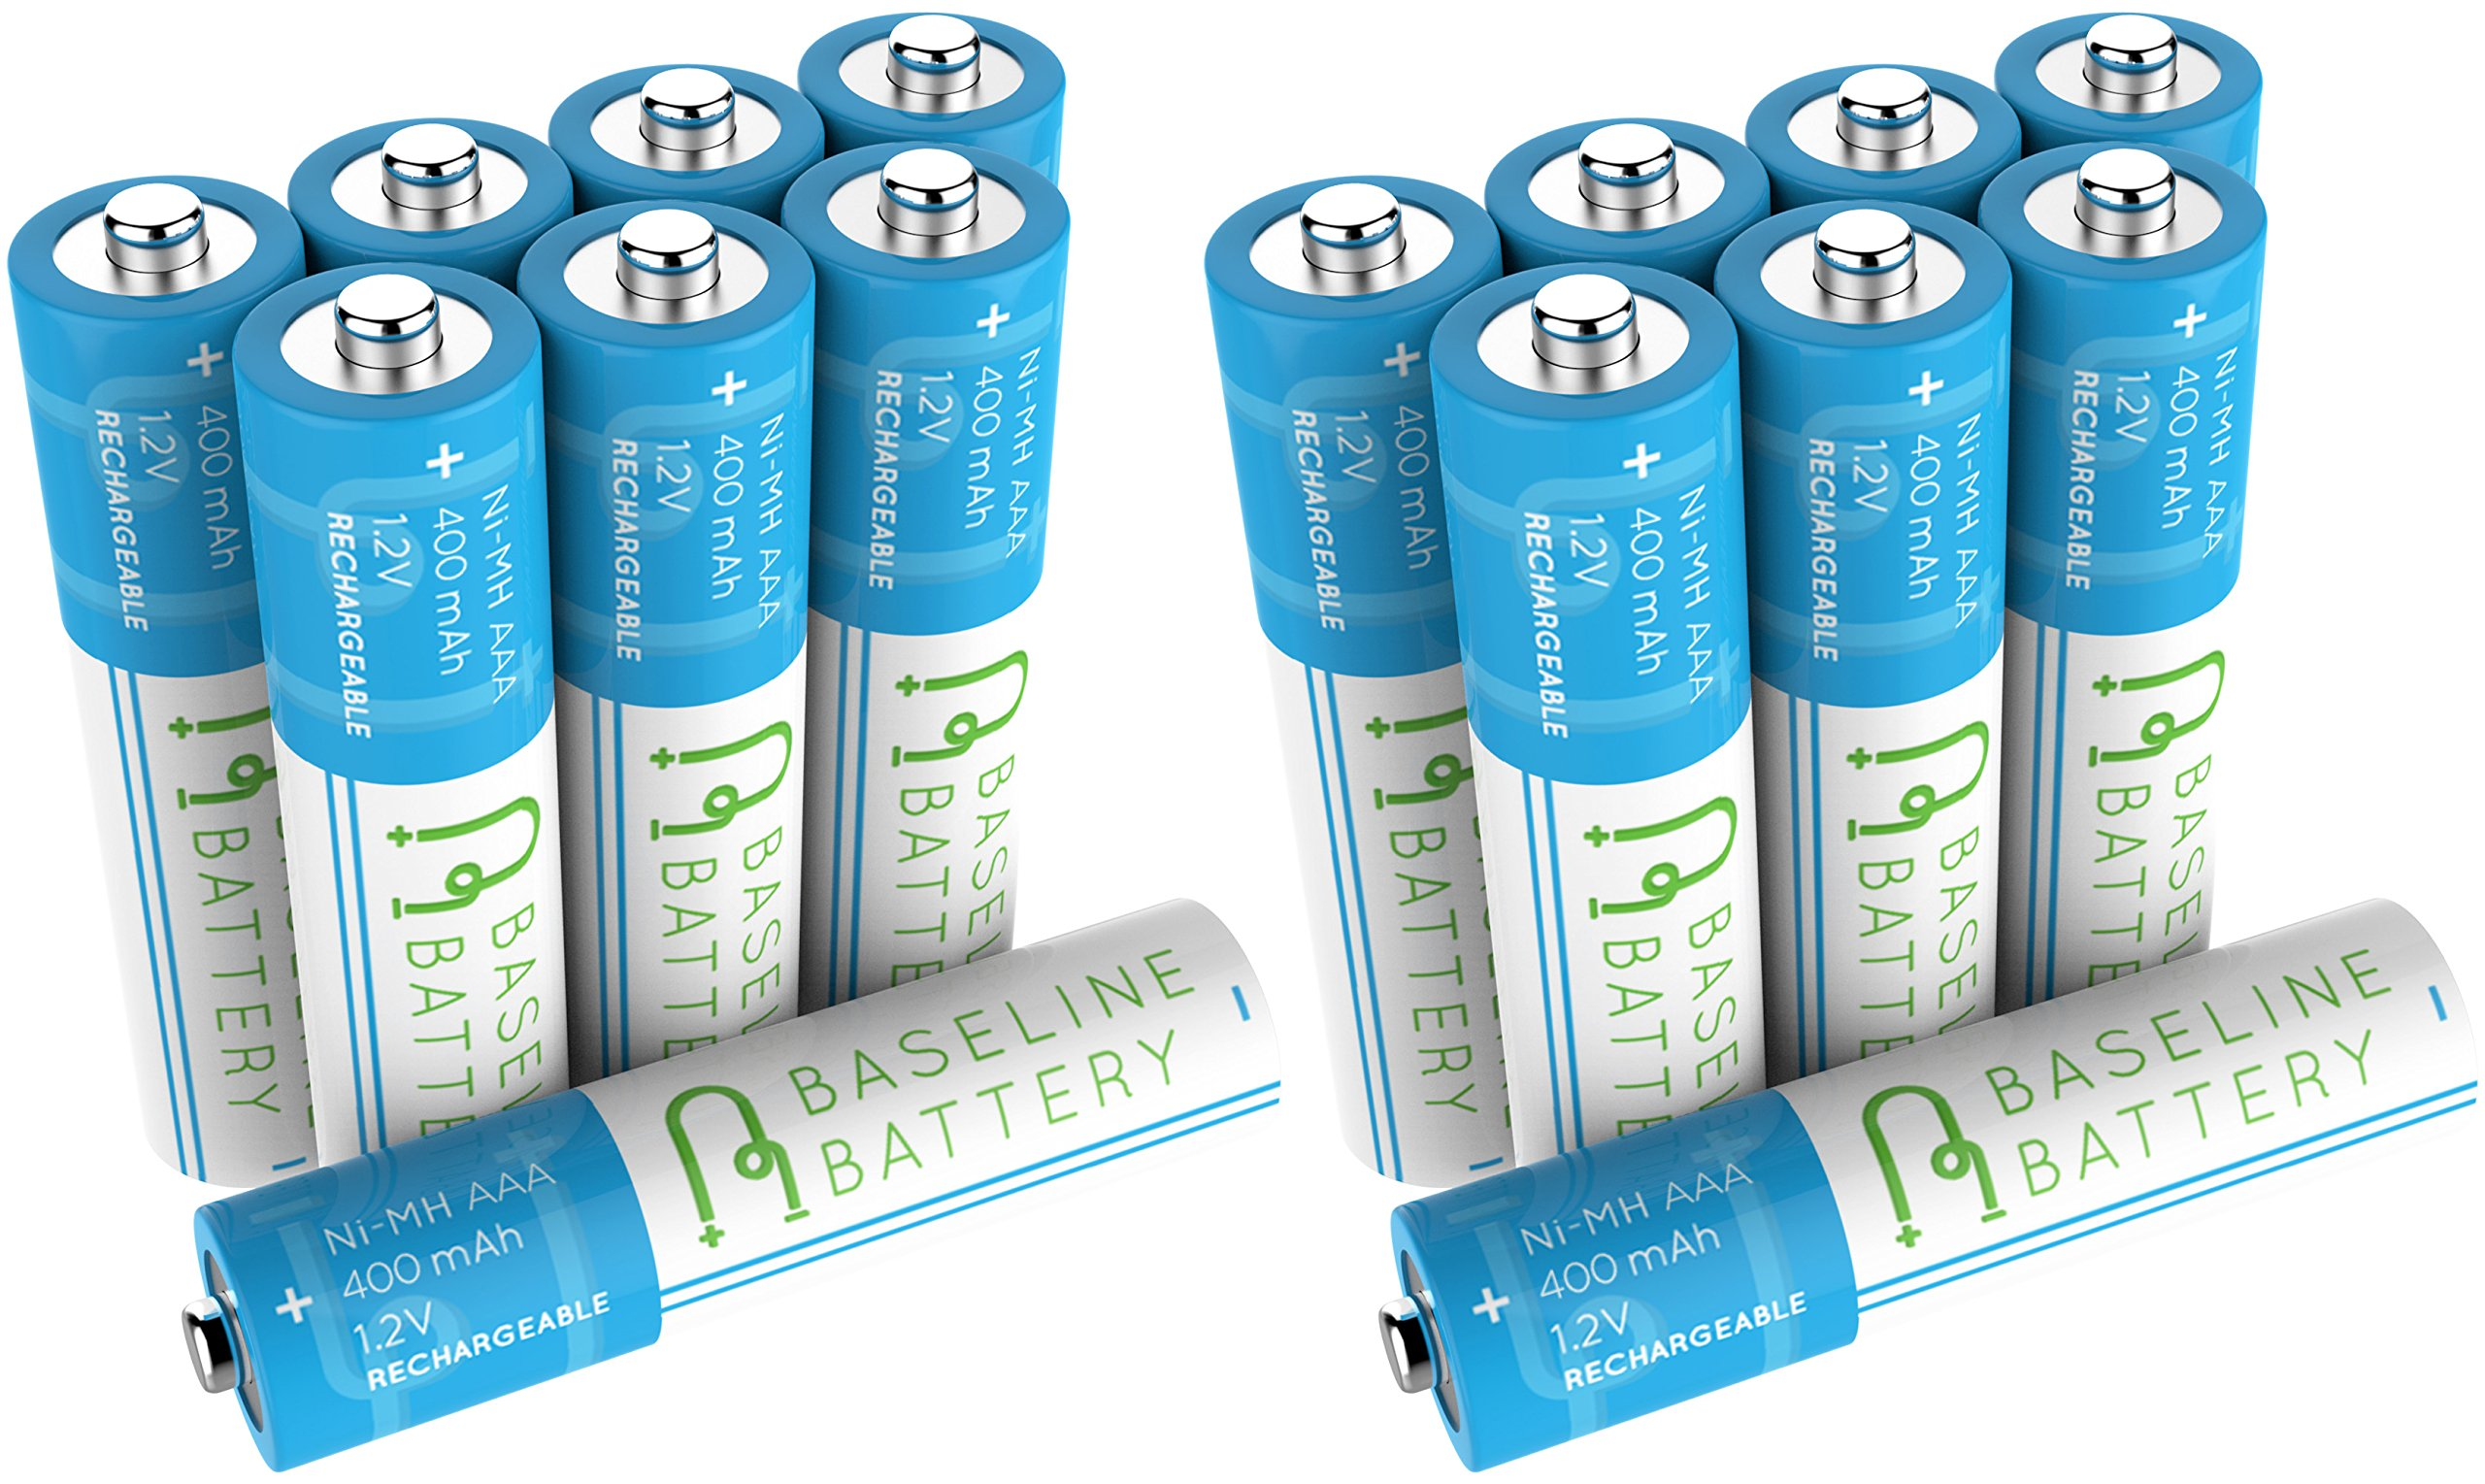 16 AAA 400mAh Ni-MH Rechargeable Batteries Baseline Battery 1.2V for Garden Solar Light, Remotes, small appliances